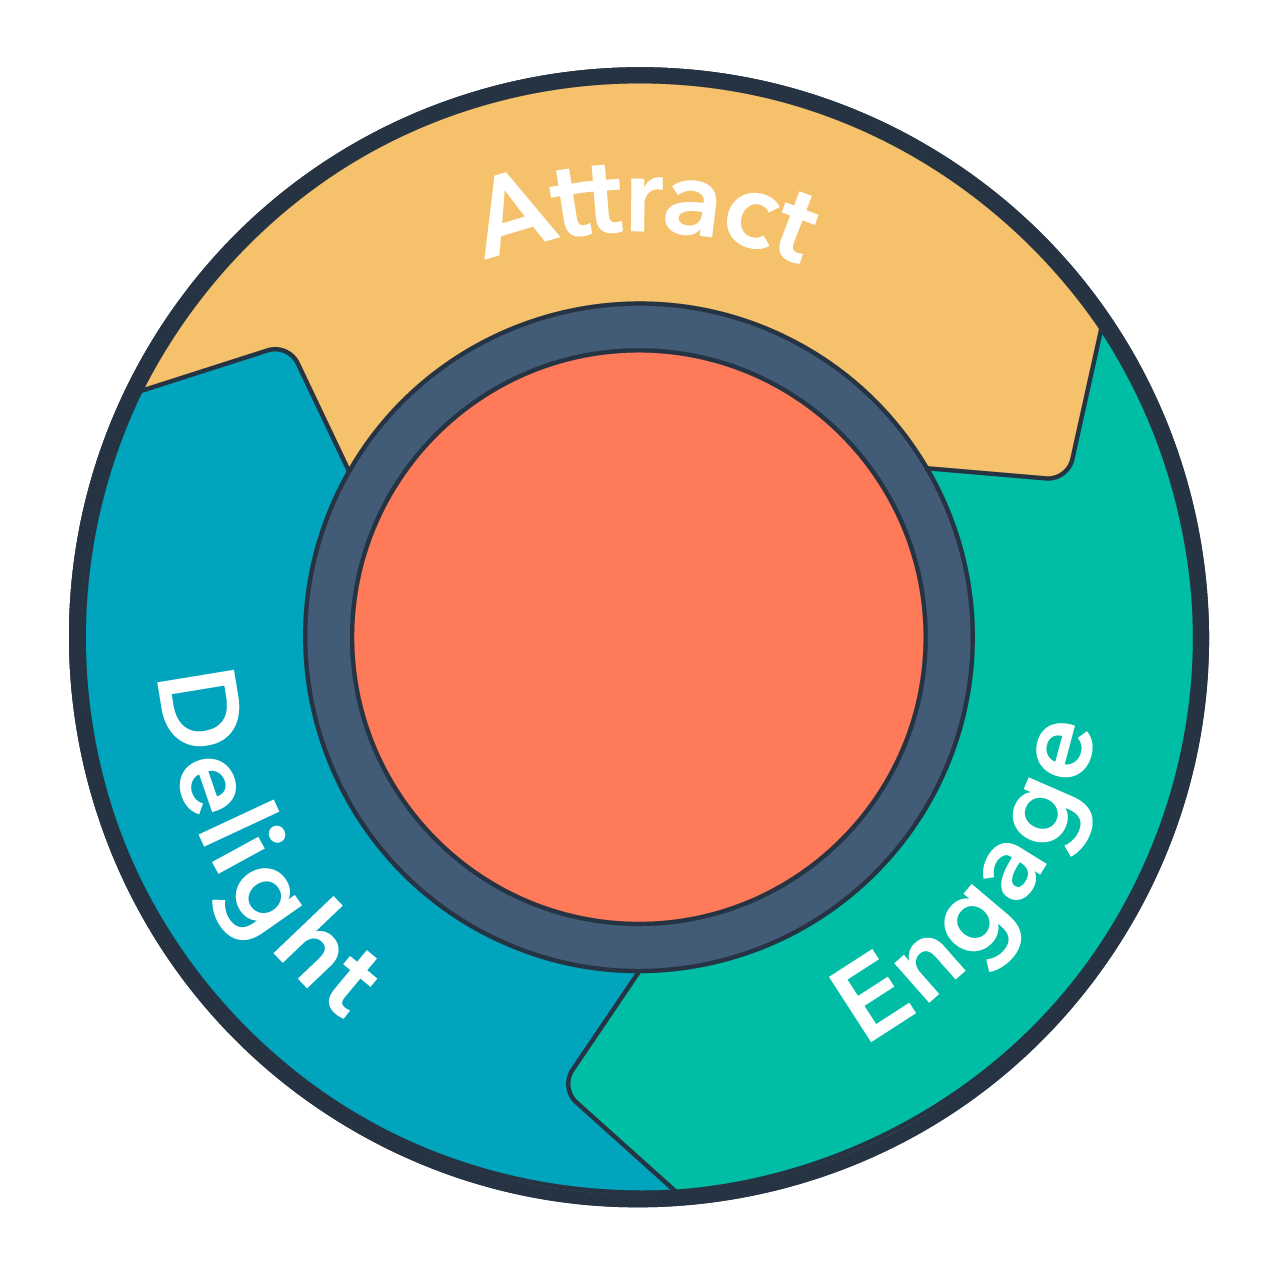 The inbound marketing cycle includes attract, engage, delight